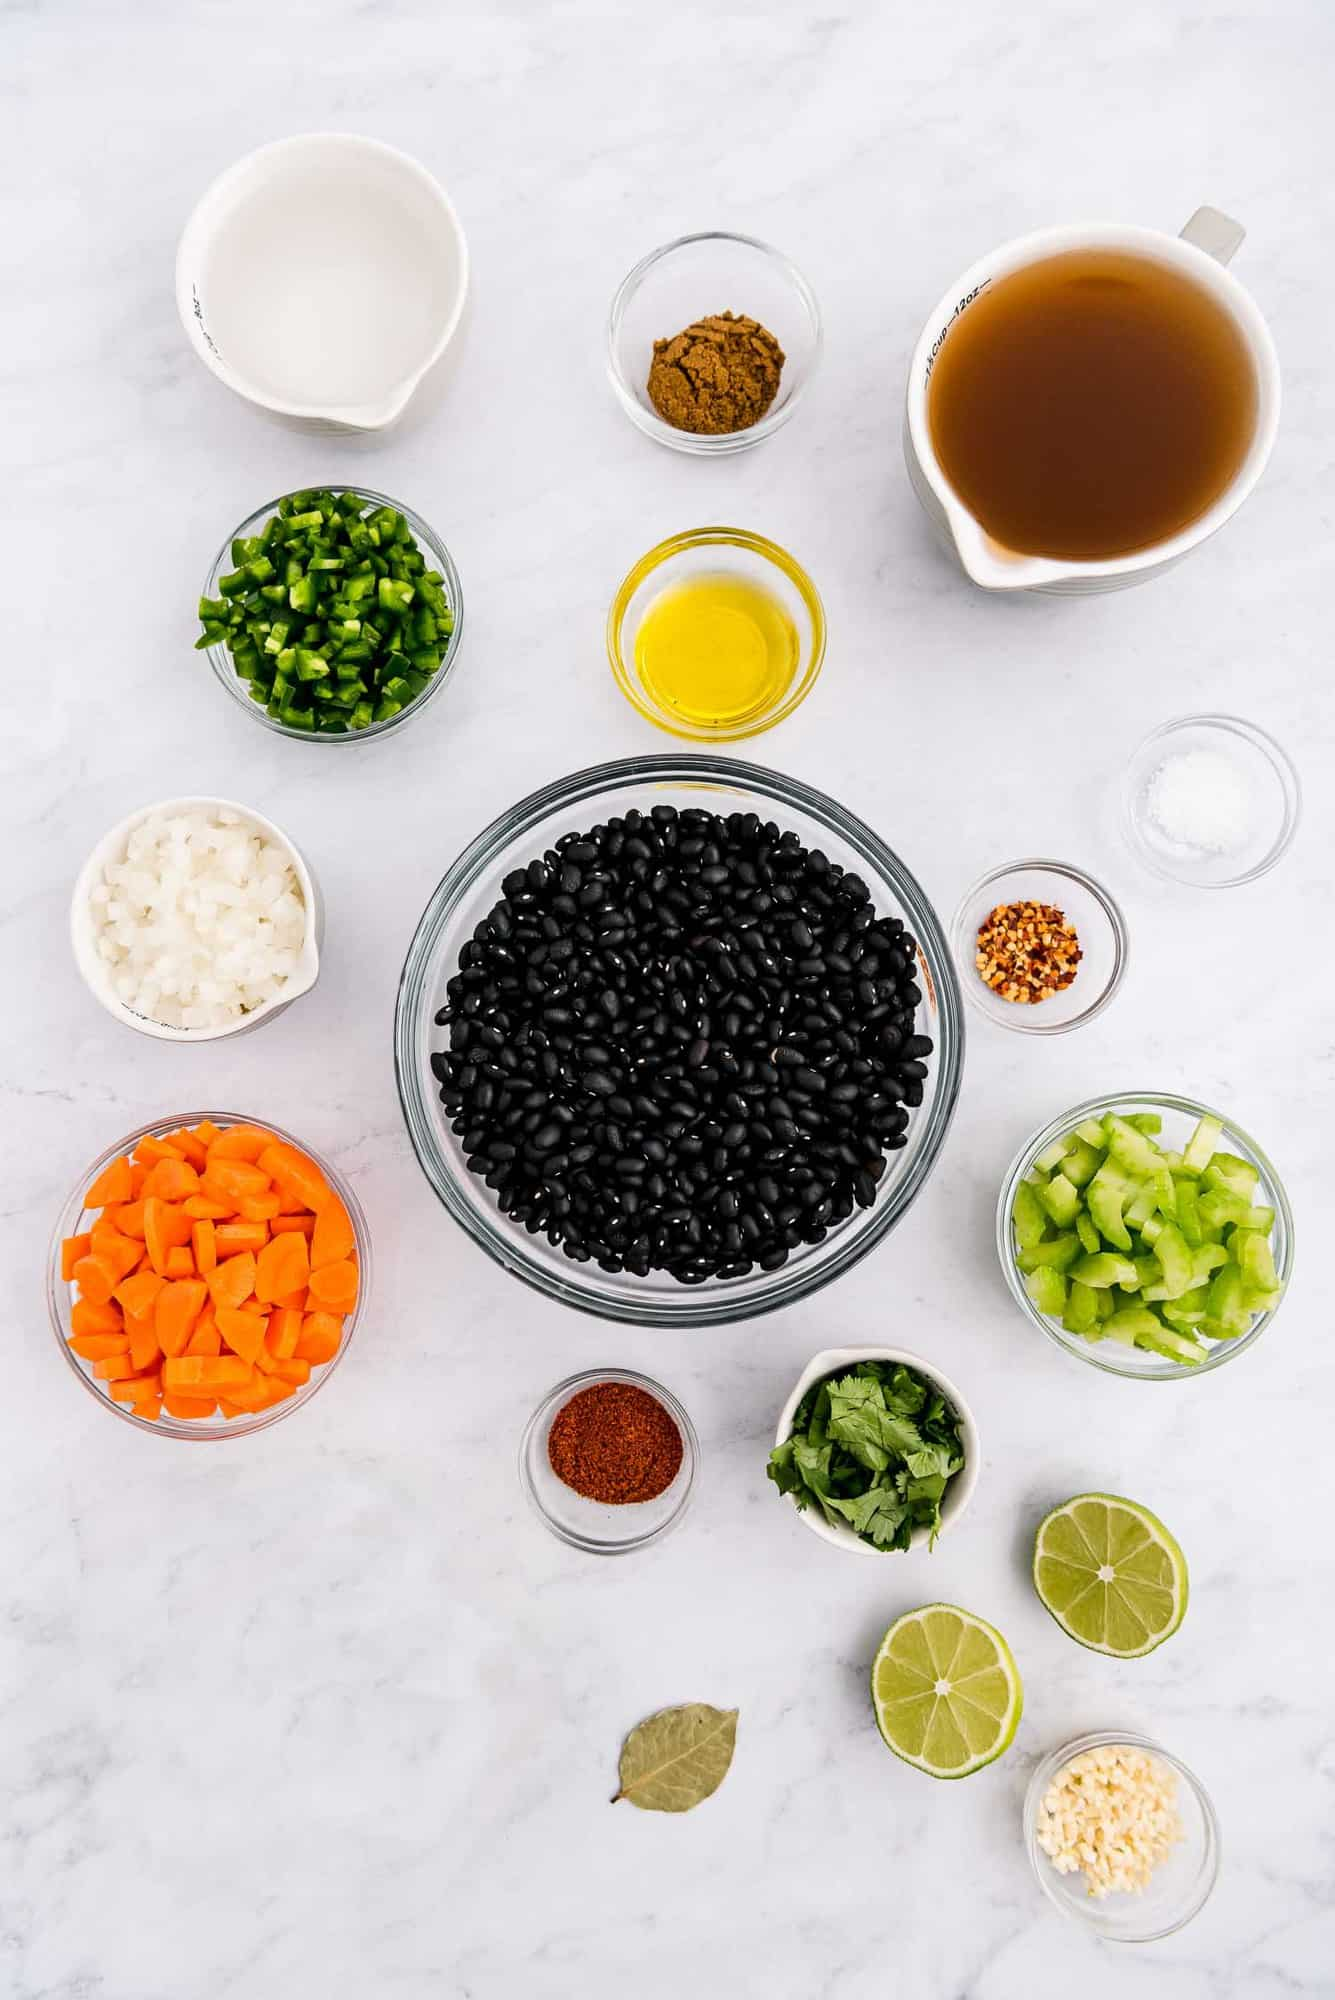 Overhead view of colorful ingredients in glass bowls, including black beans, carrots, jalapeno, and more.